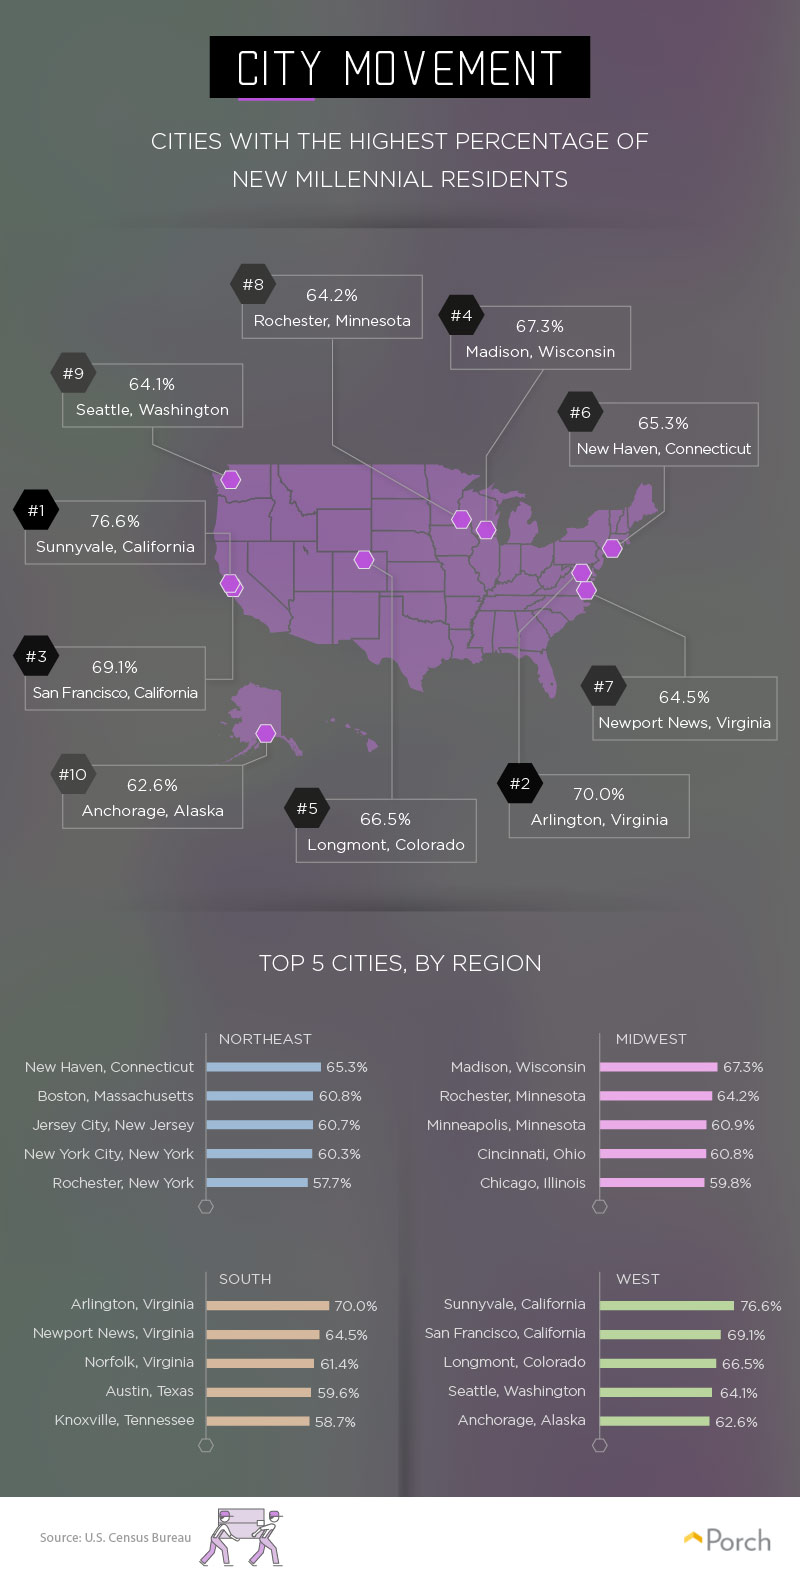 Cities with highest percentage of new millennial residents